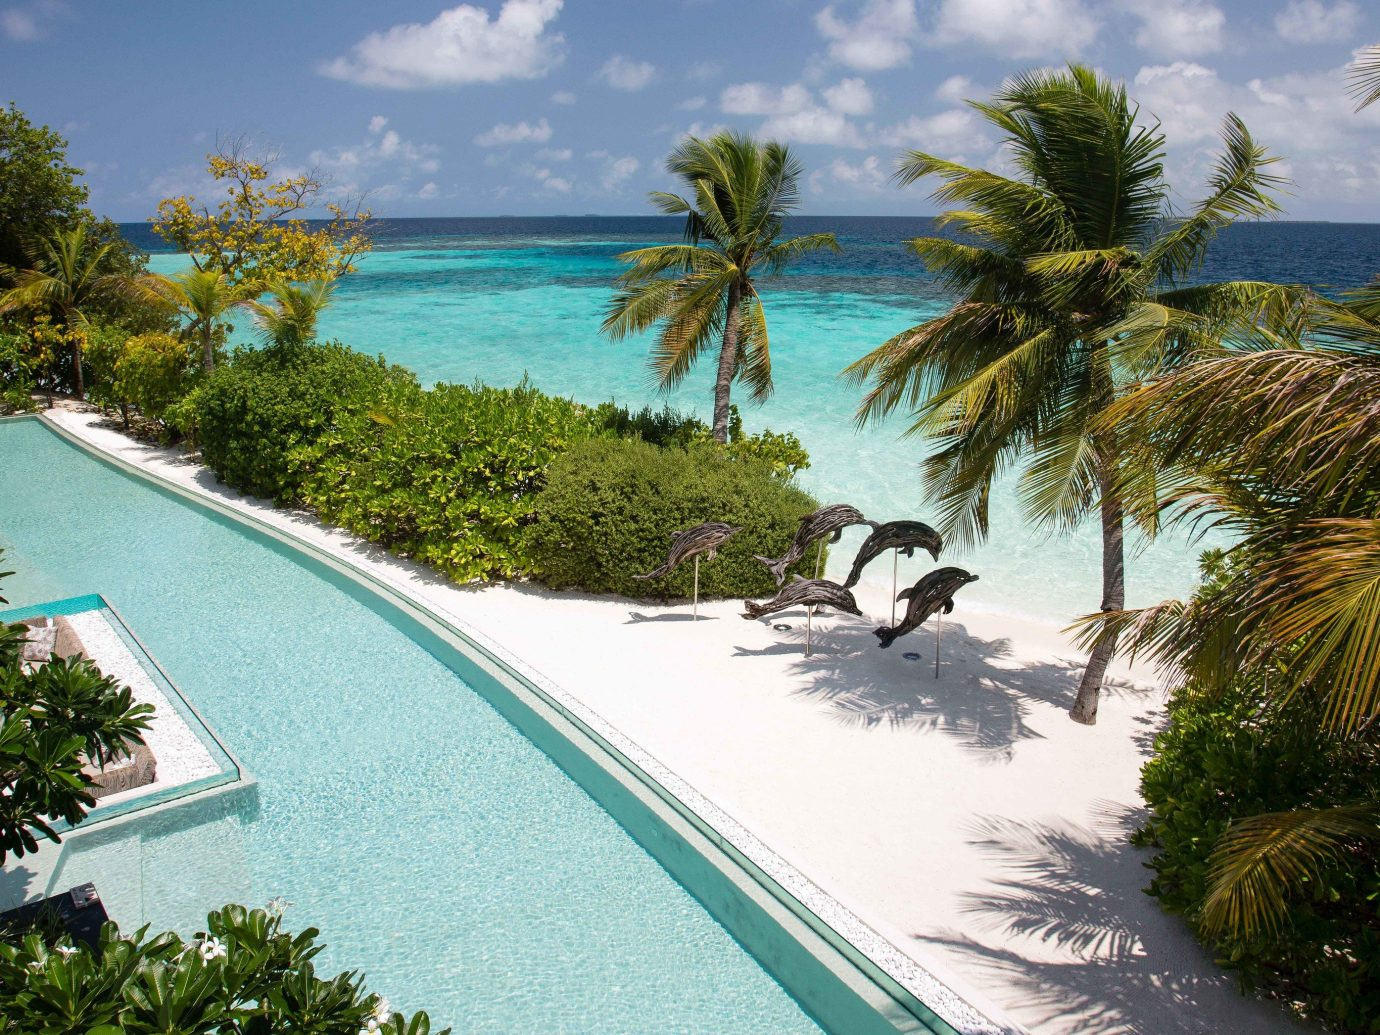 Pool and beach at Coco Privé, Maldives